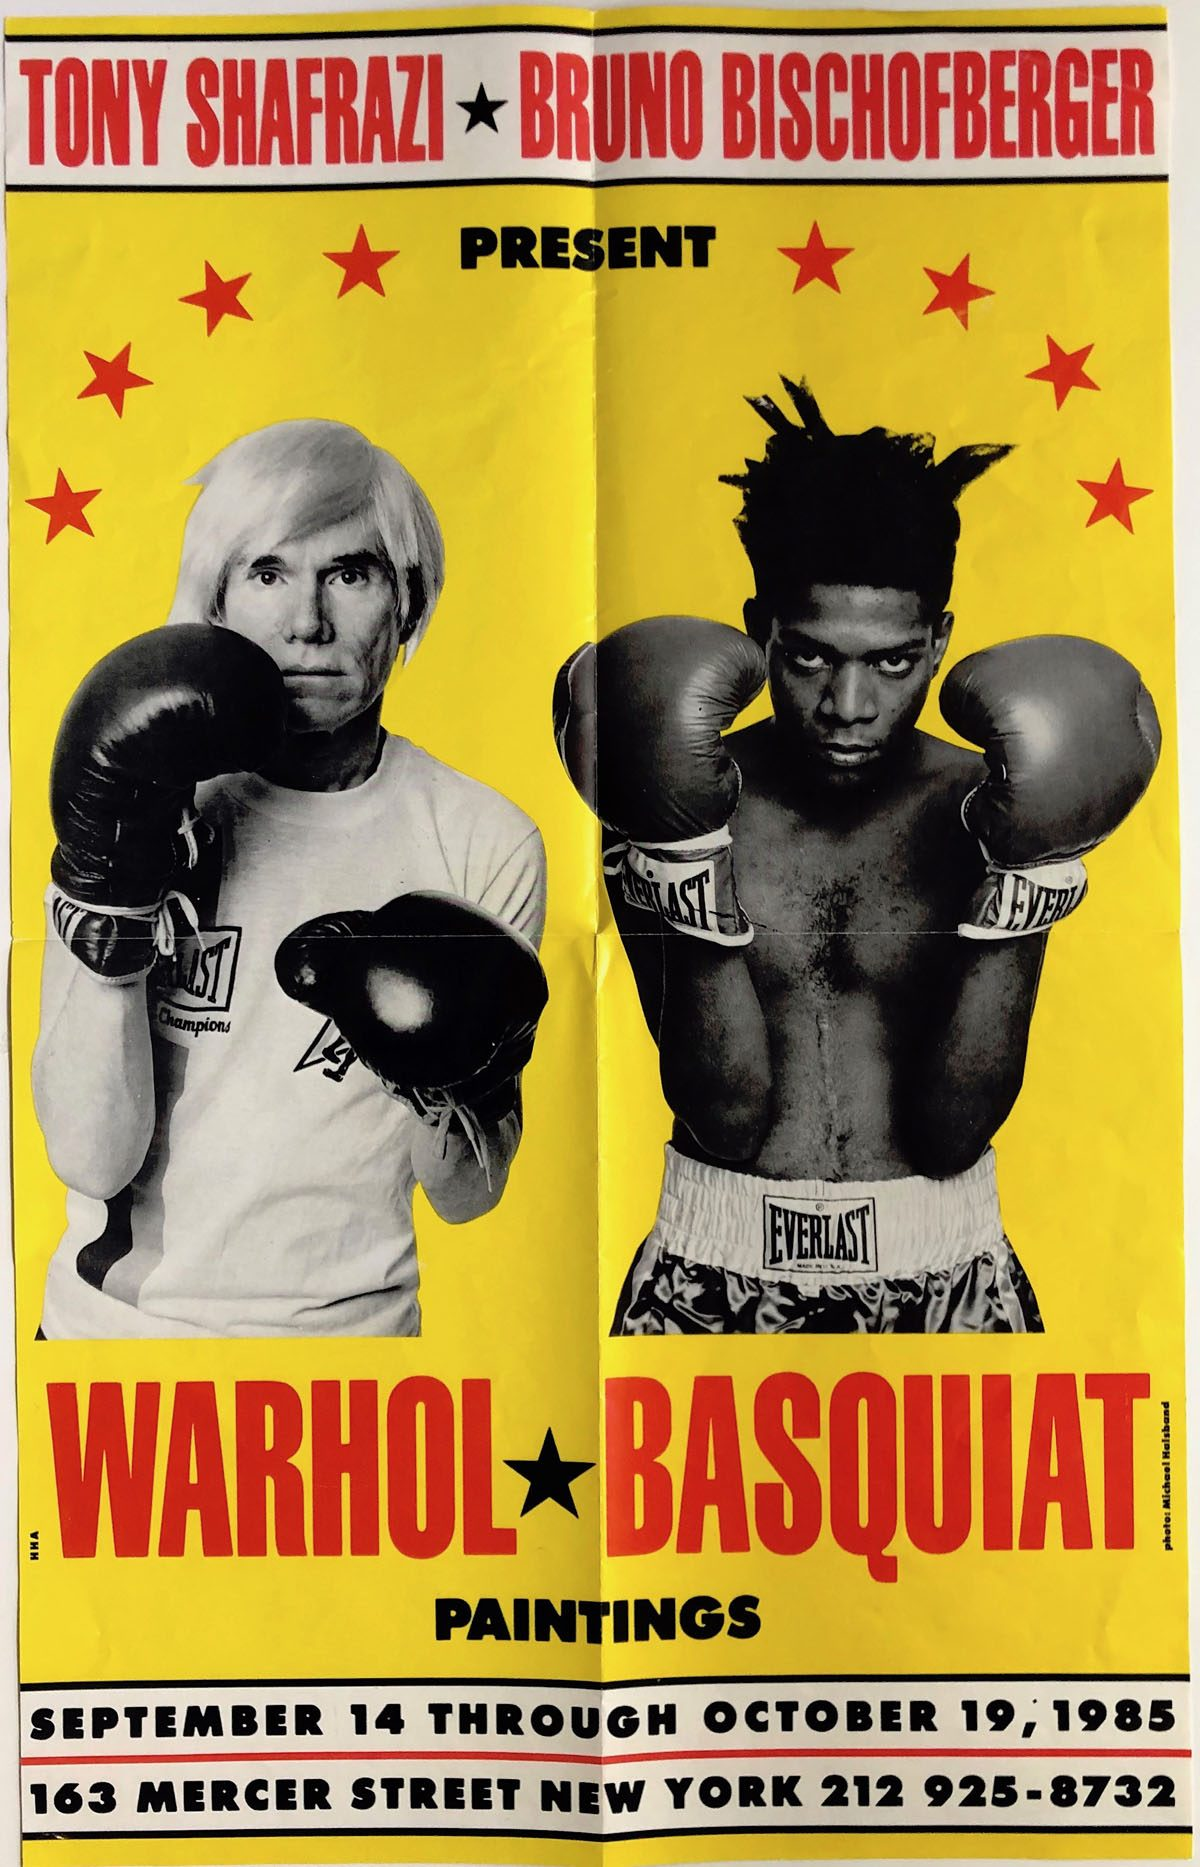 Tony Shafrazi Gallery, Warhol, Basquiat, Paintings, Poster, September – October 1985